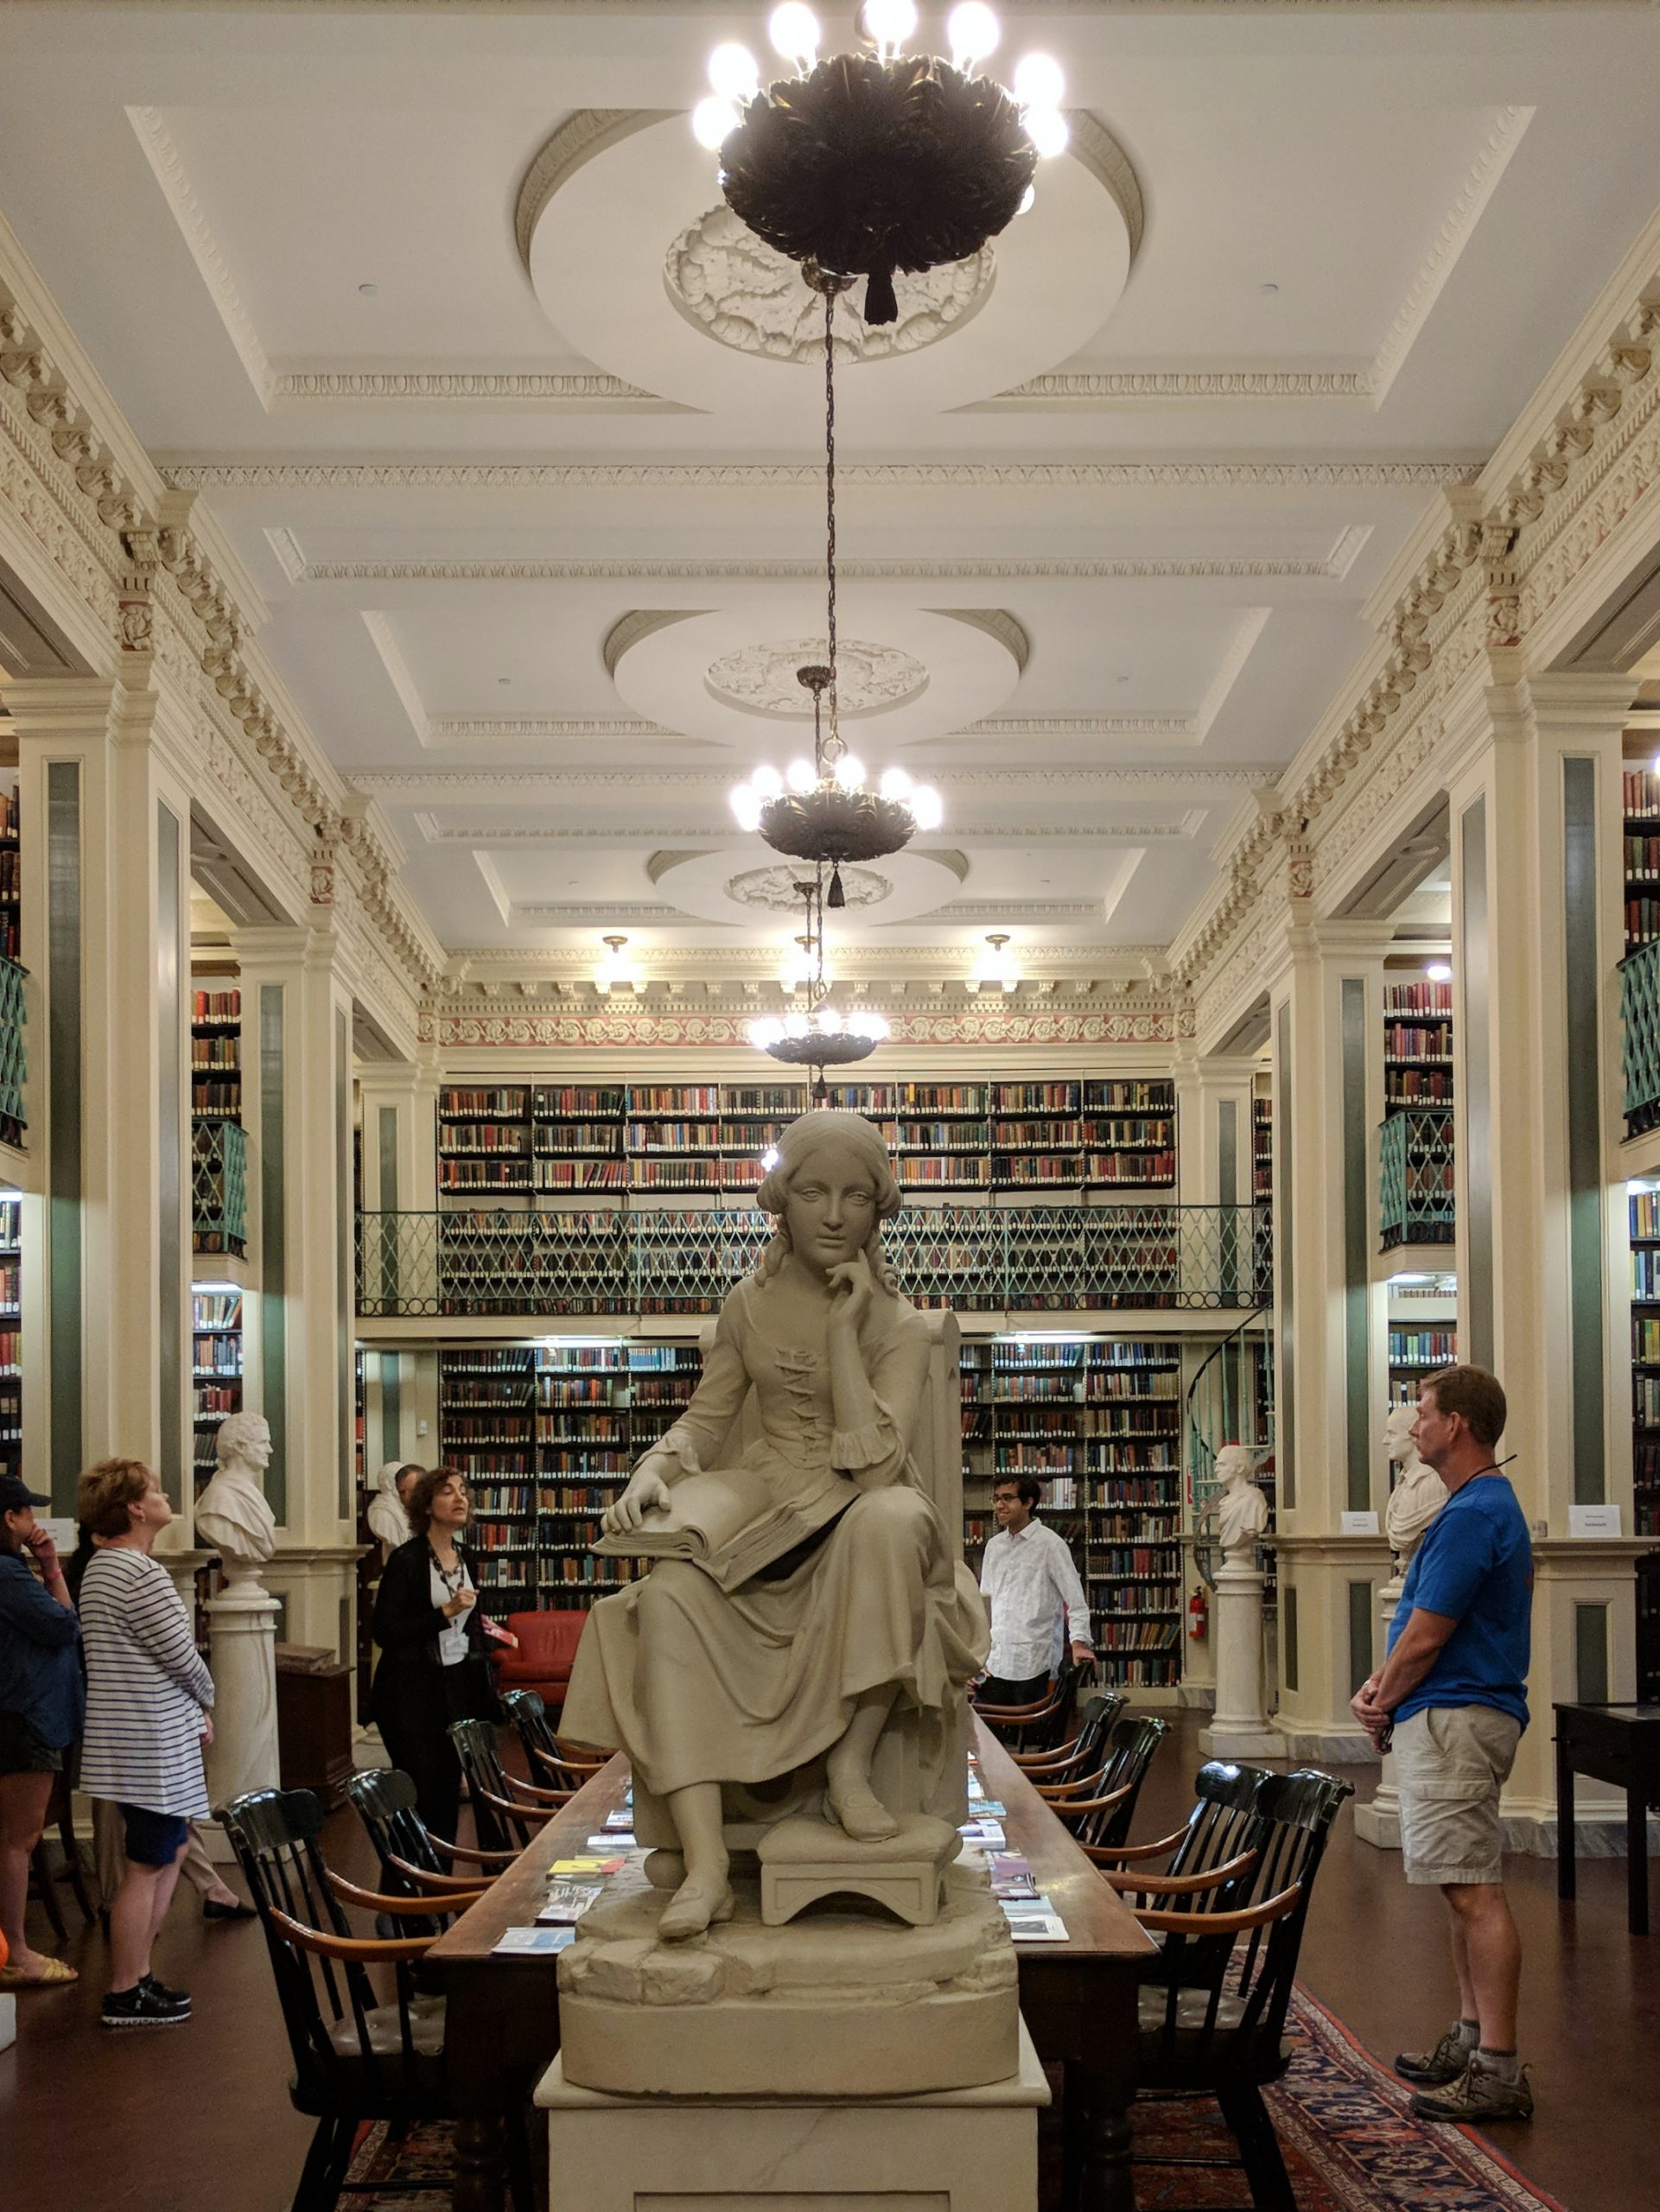 Reading room with a statue of a thinking woman and rows of books and chandeliers in the background